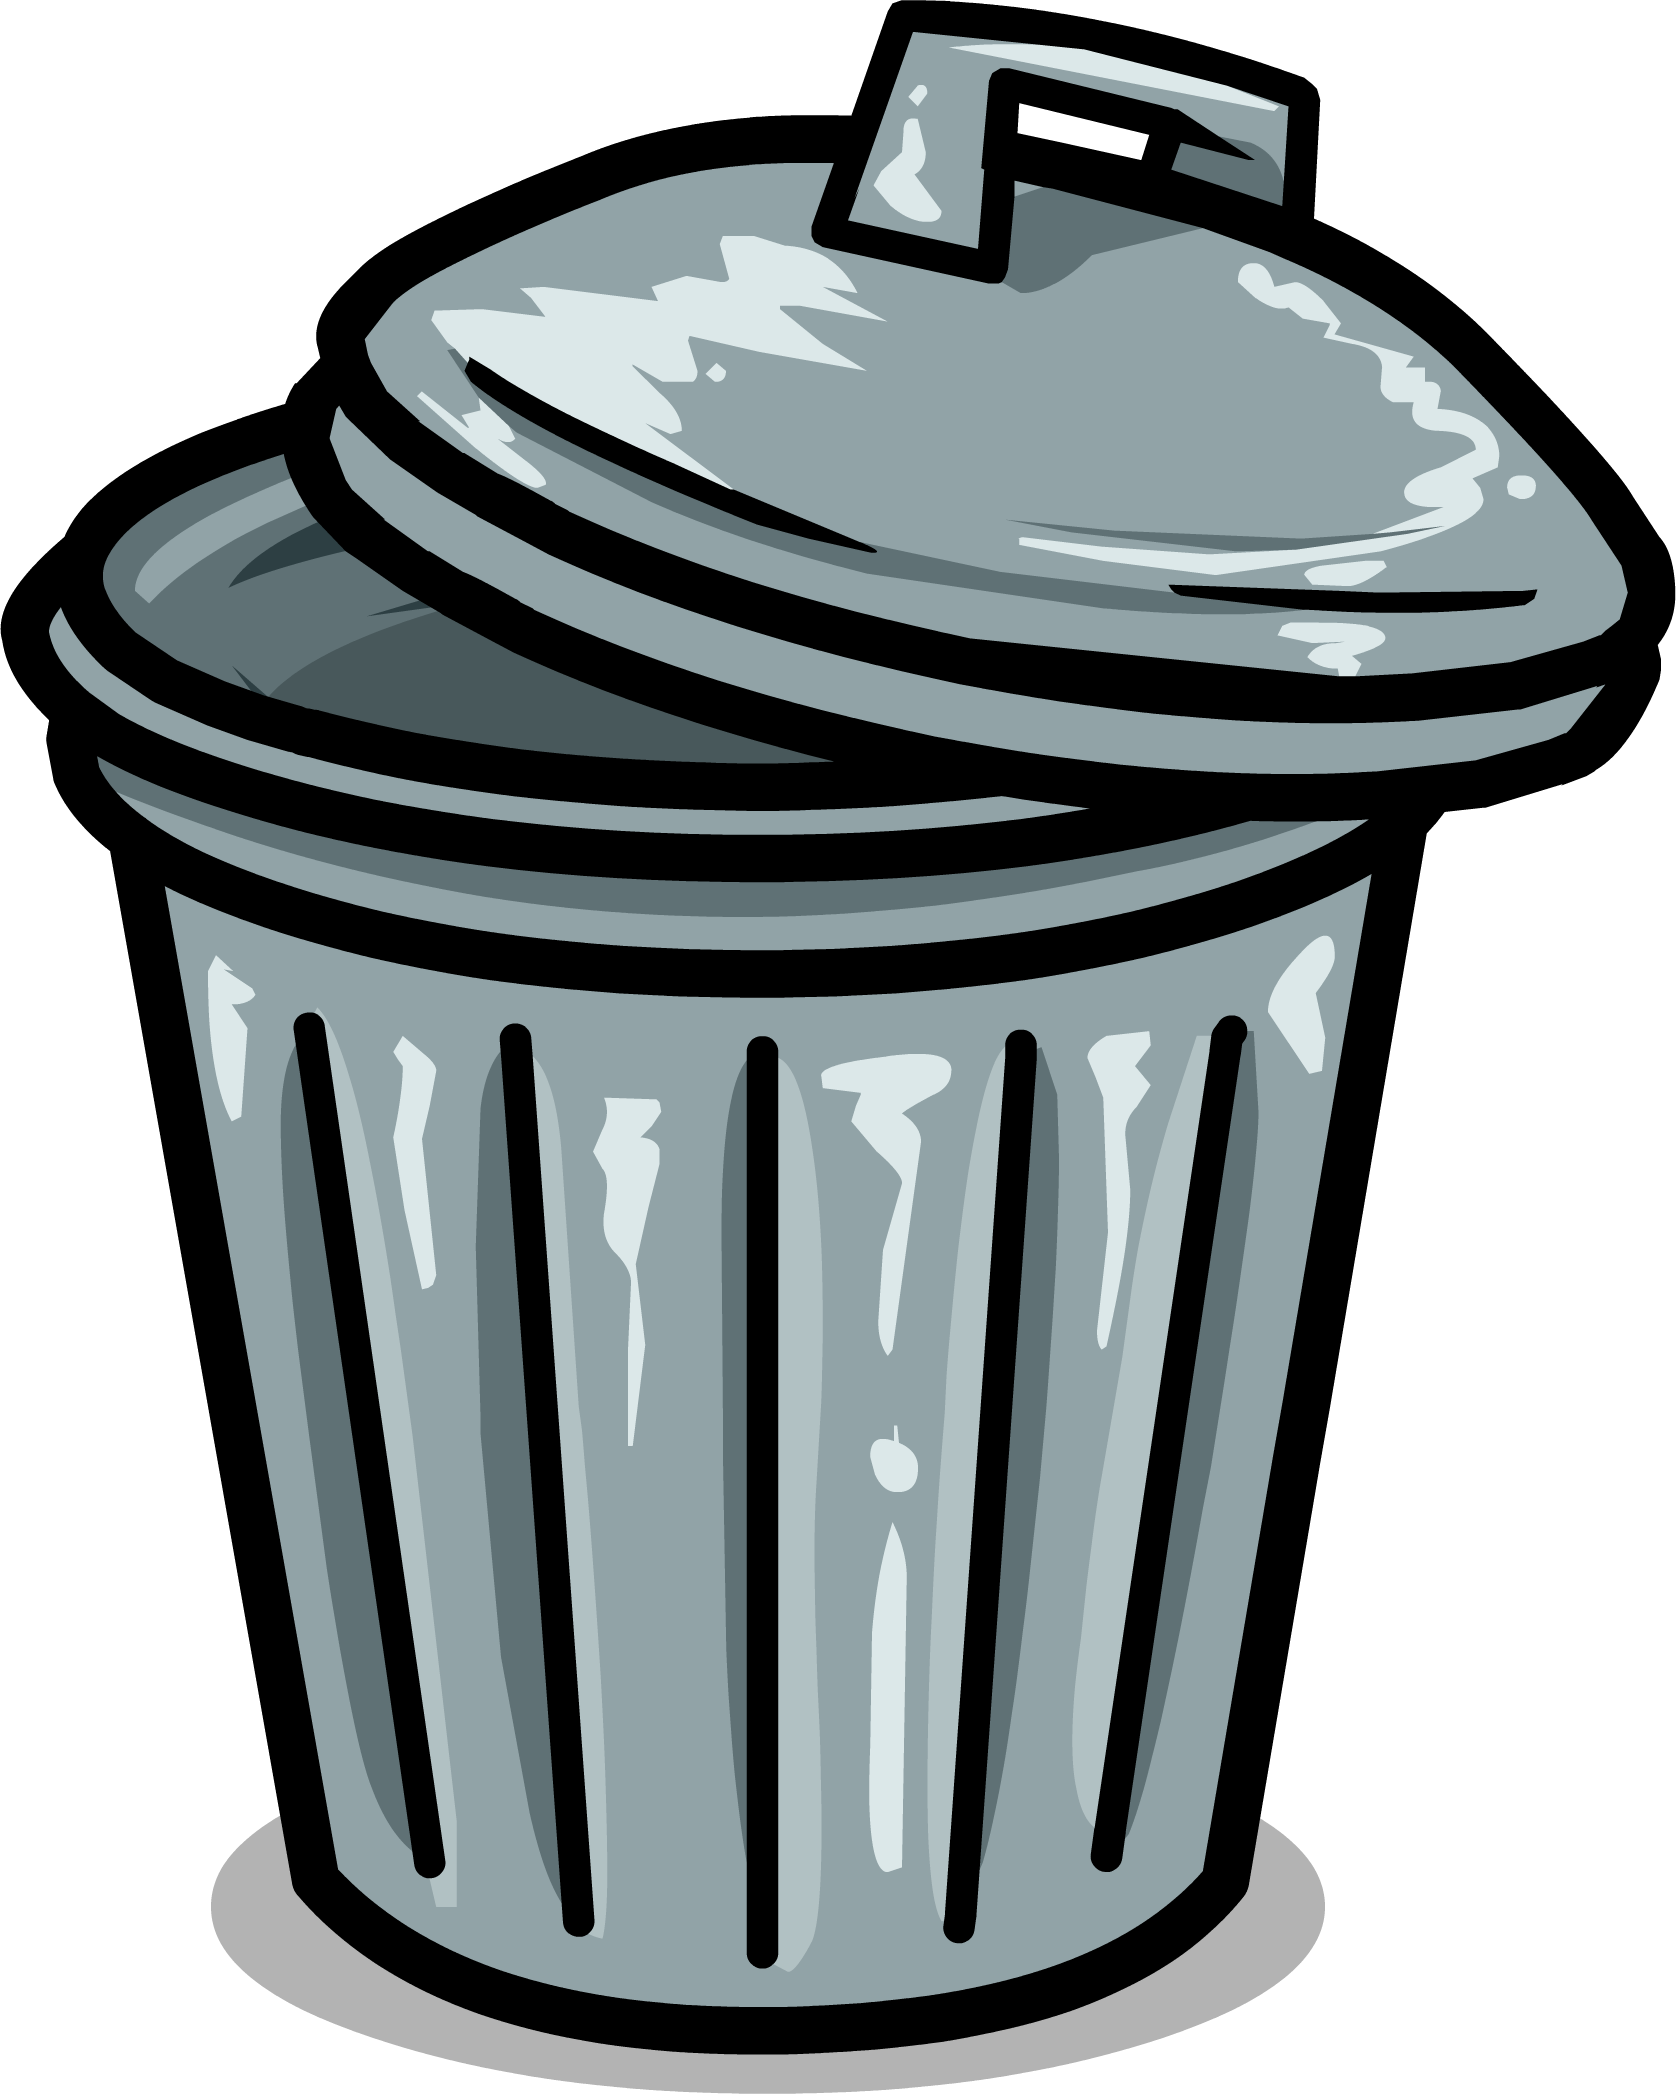 Trashcan clipart png. Image sprite club penguin